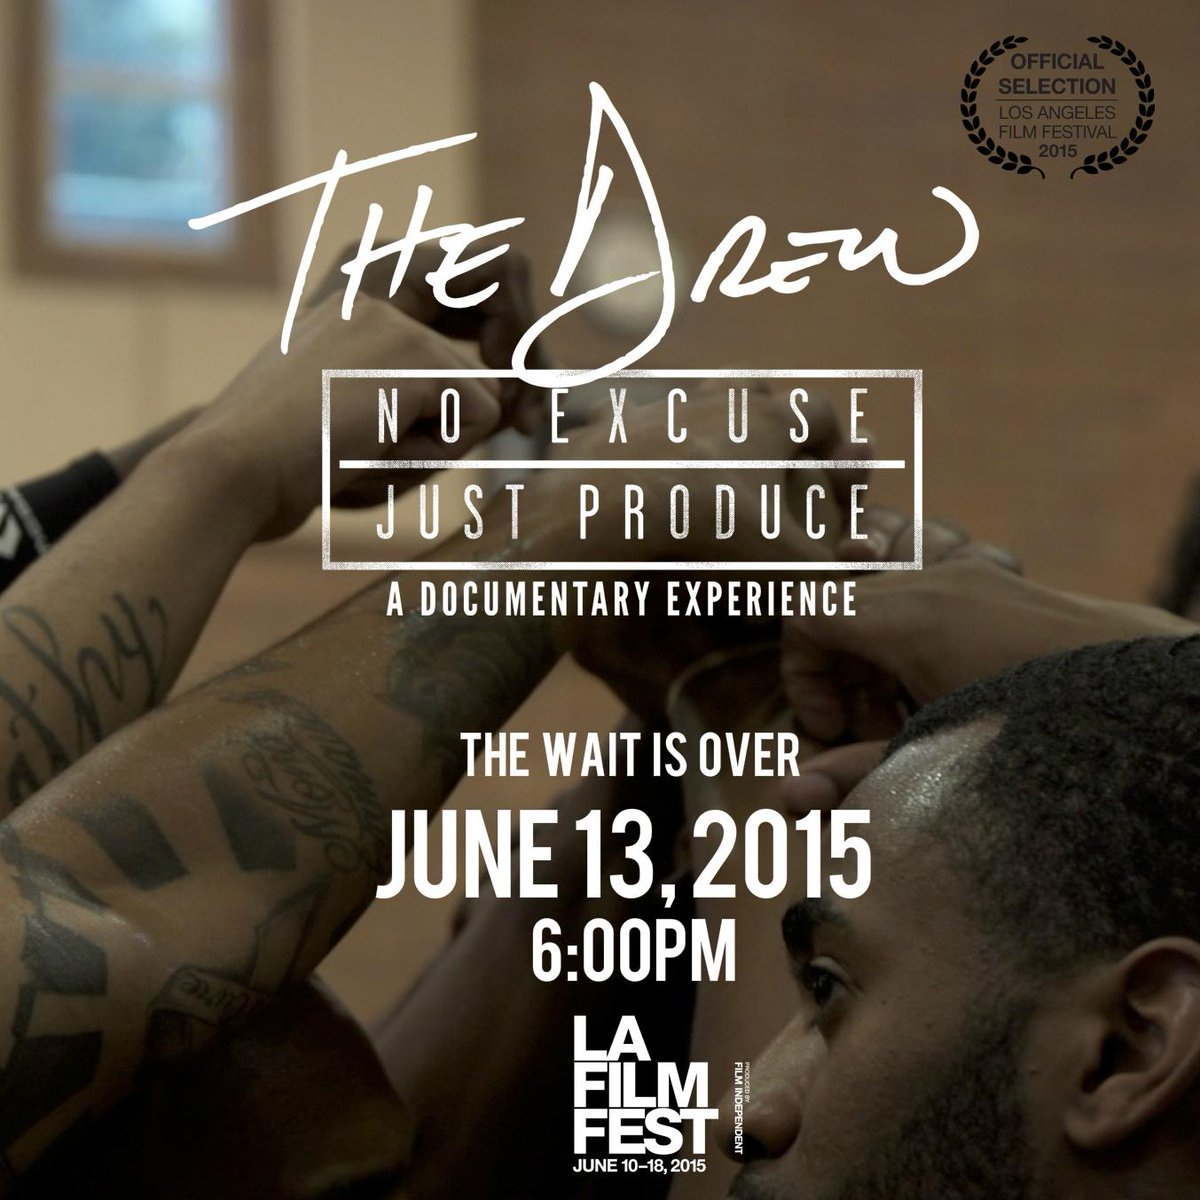 Don't miss @TheDrewDoc at @LAFilmFest this June! Tickets go on sale May 19th at the link http://t.co/UJlT2cmscp http://t.co/4MTkzzoQD9